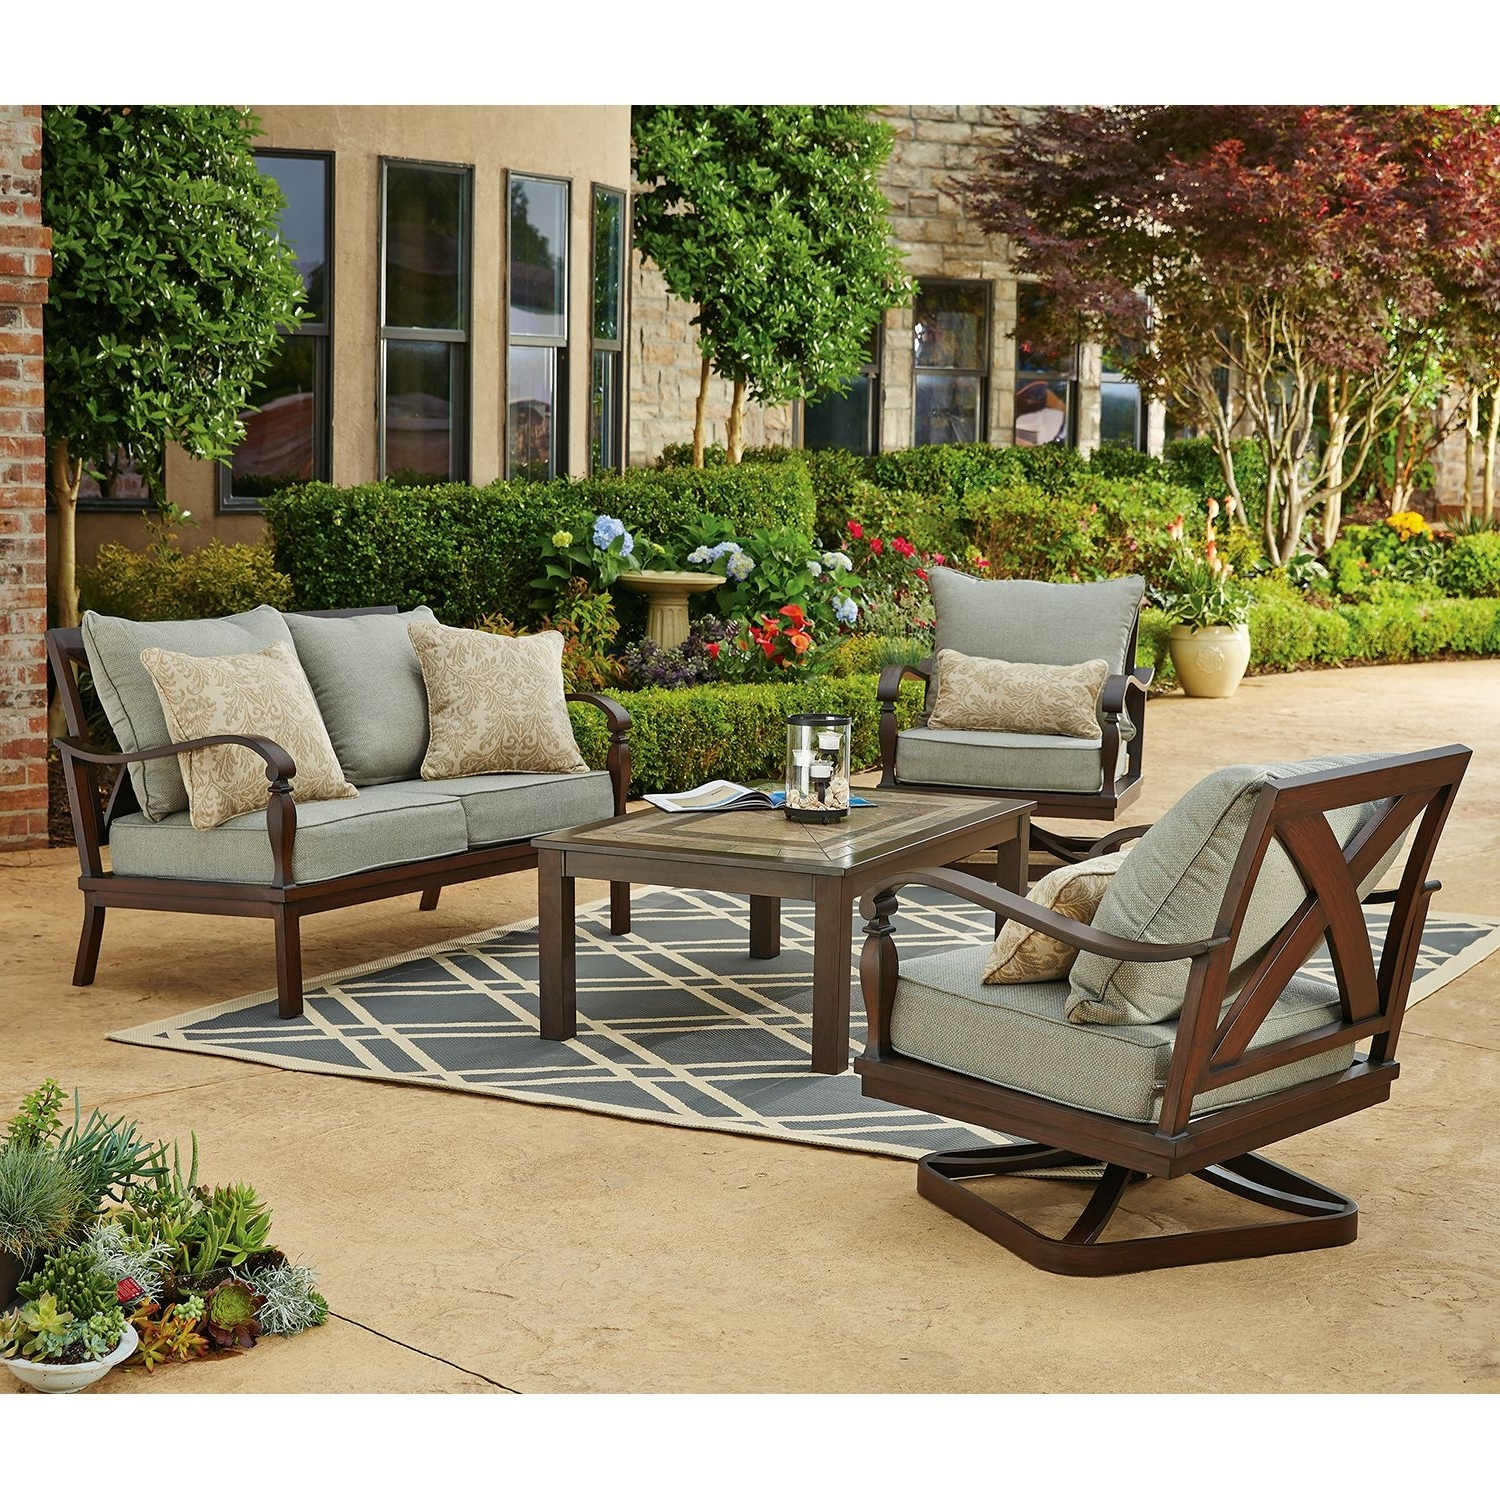 Preferred Patio Conversation Sets Without Cushions Pertaining To Furniture: Cozy Wrought Iron Patio Chairs With Cushions And Gray (View 13 of 15)